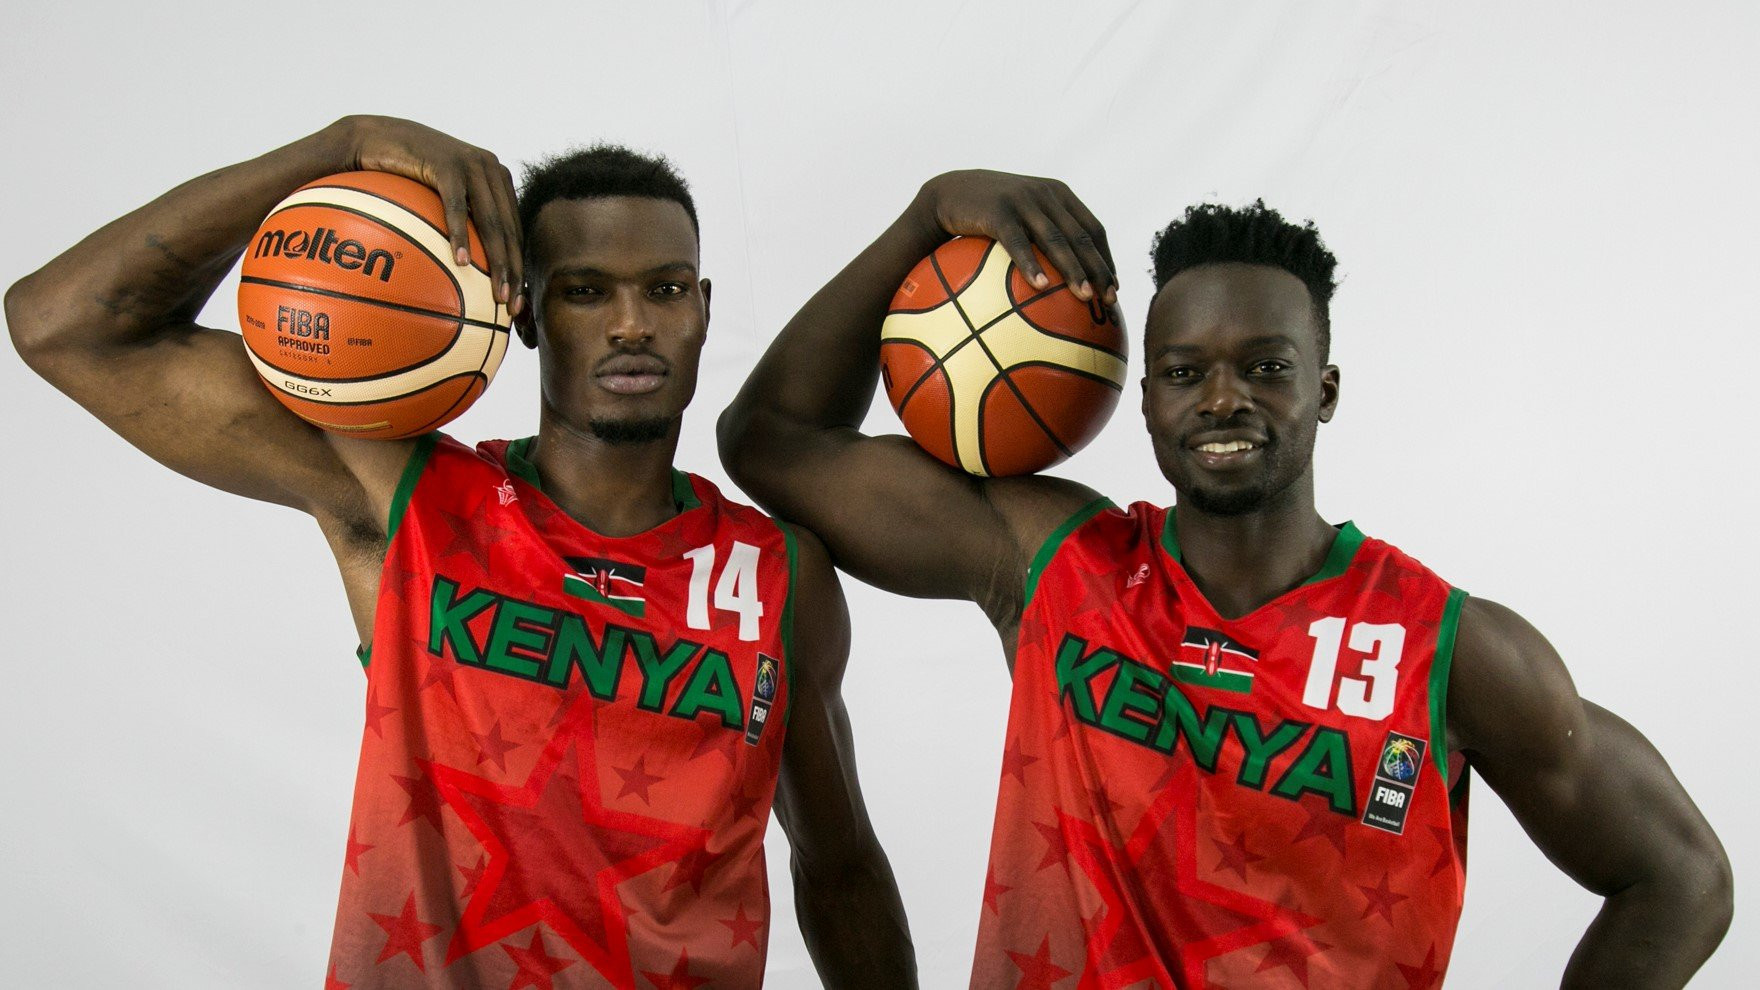 Morocco edge out Chad in FIBA AfroCan opener